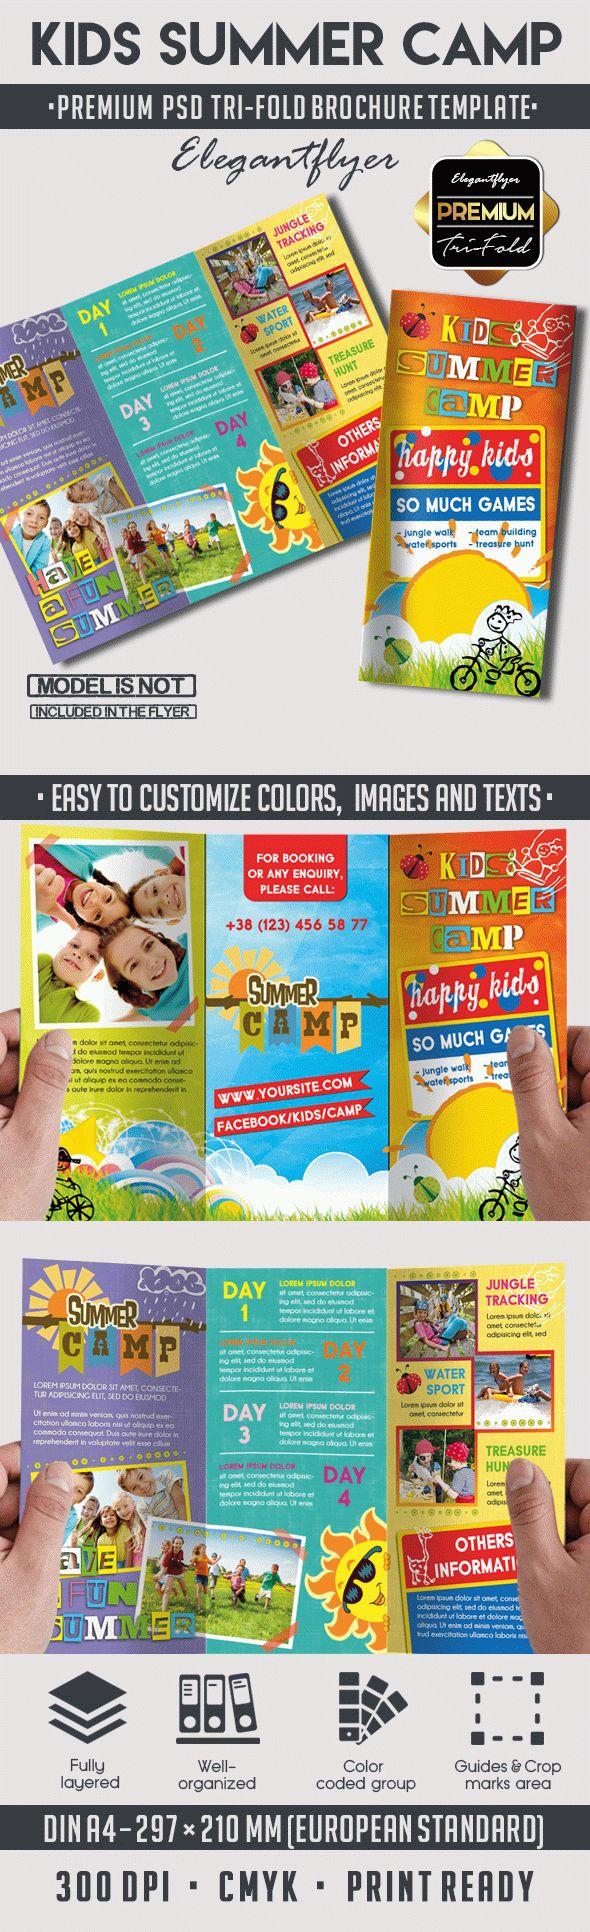 Tri fold brochure kids summer camp by elegantflyer for Free brochure templates for kids